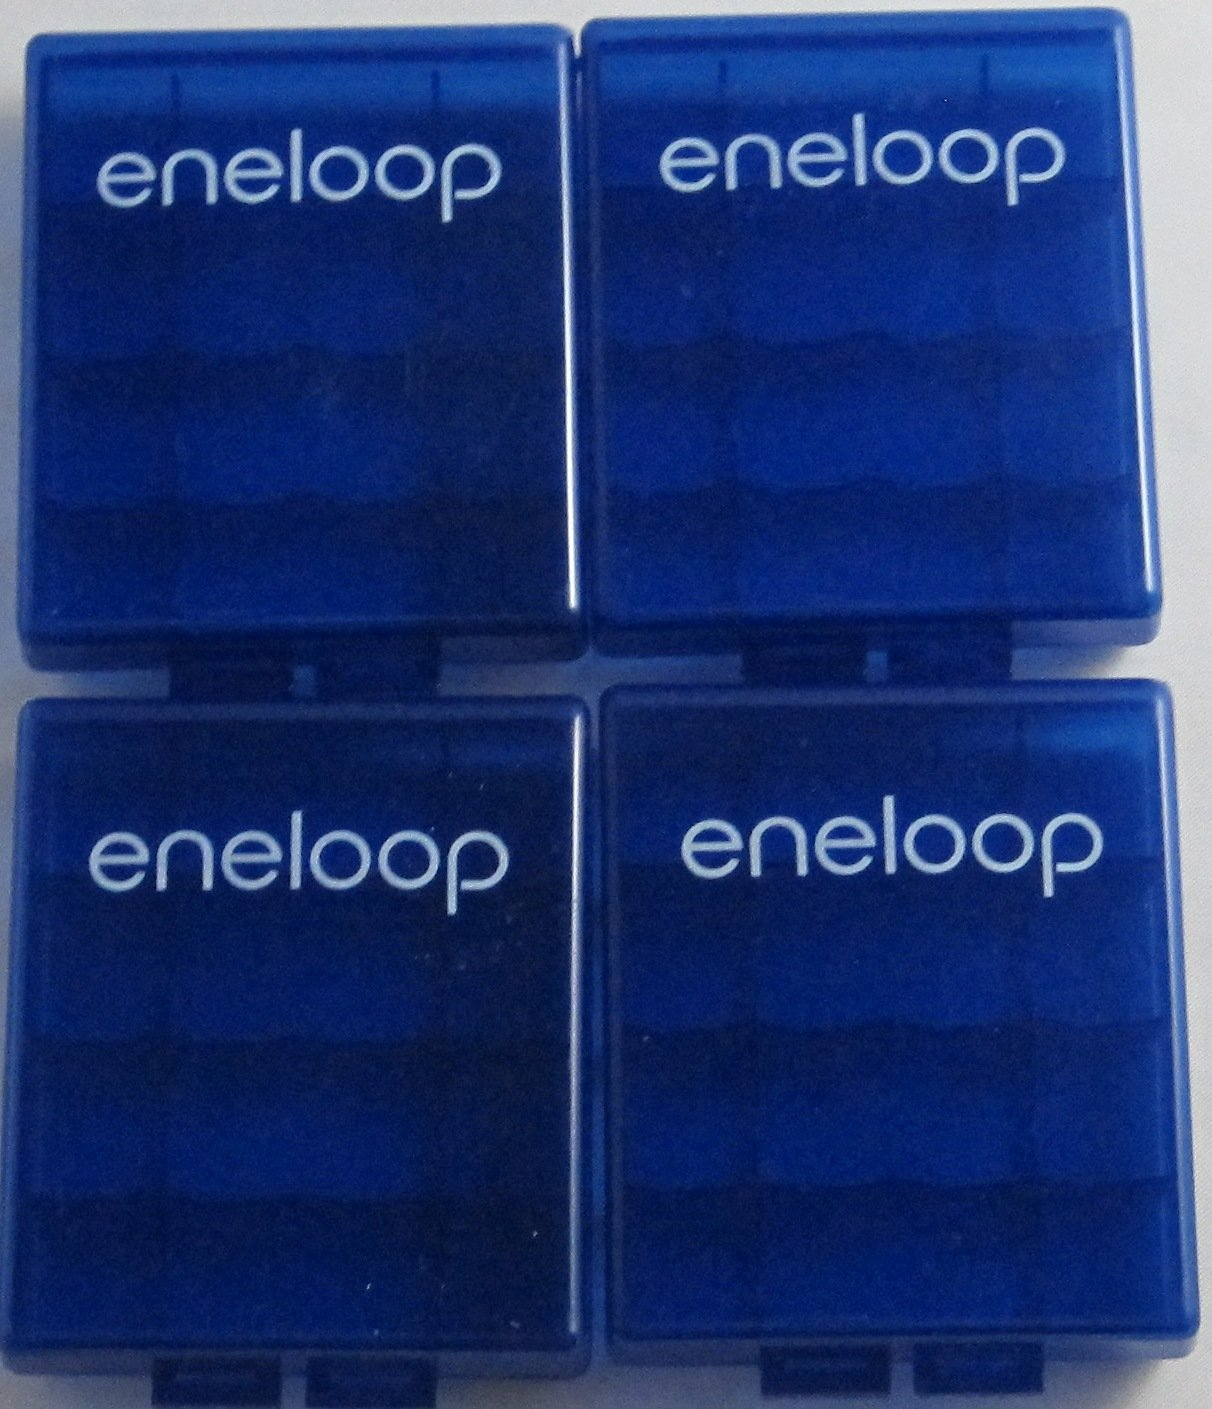 Cheap Sanyo Eneloop 2500mah Find Deals On Battery Aaa 2pcs Get Quotations Storage Case X 4